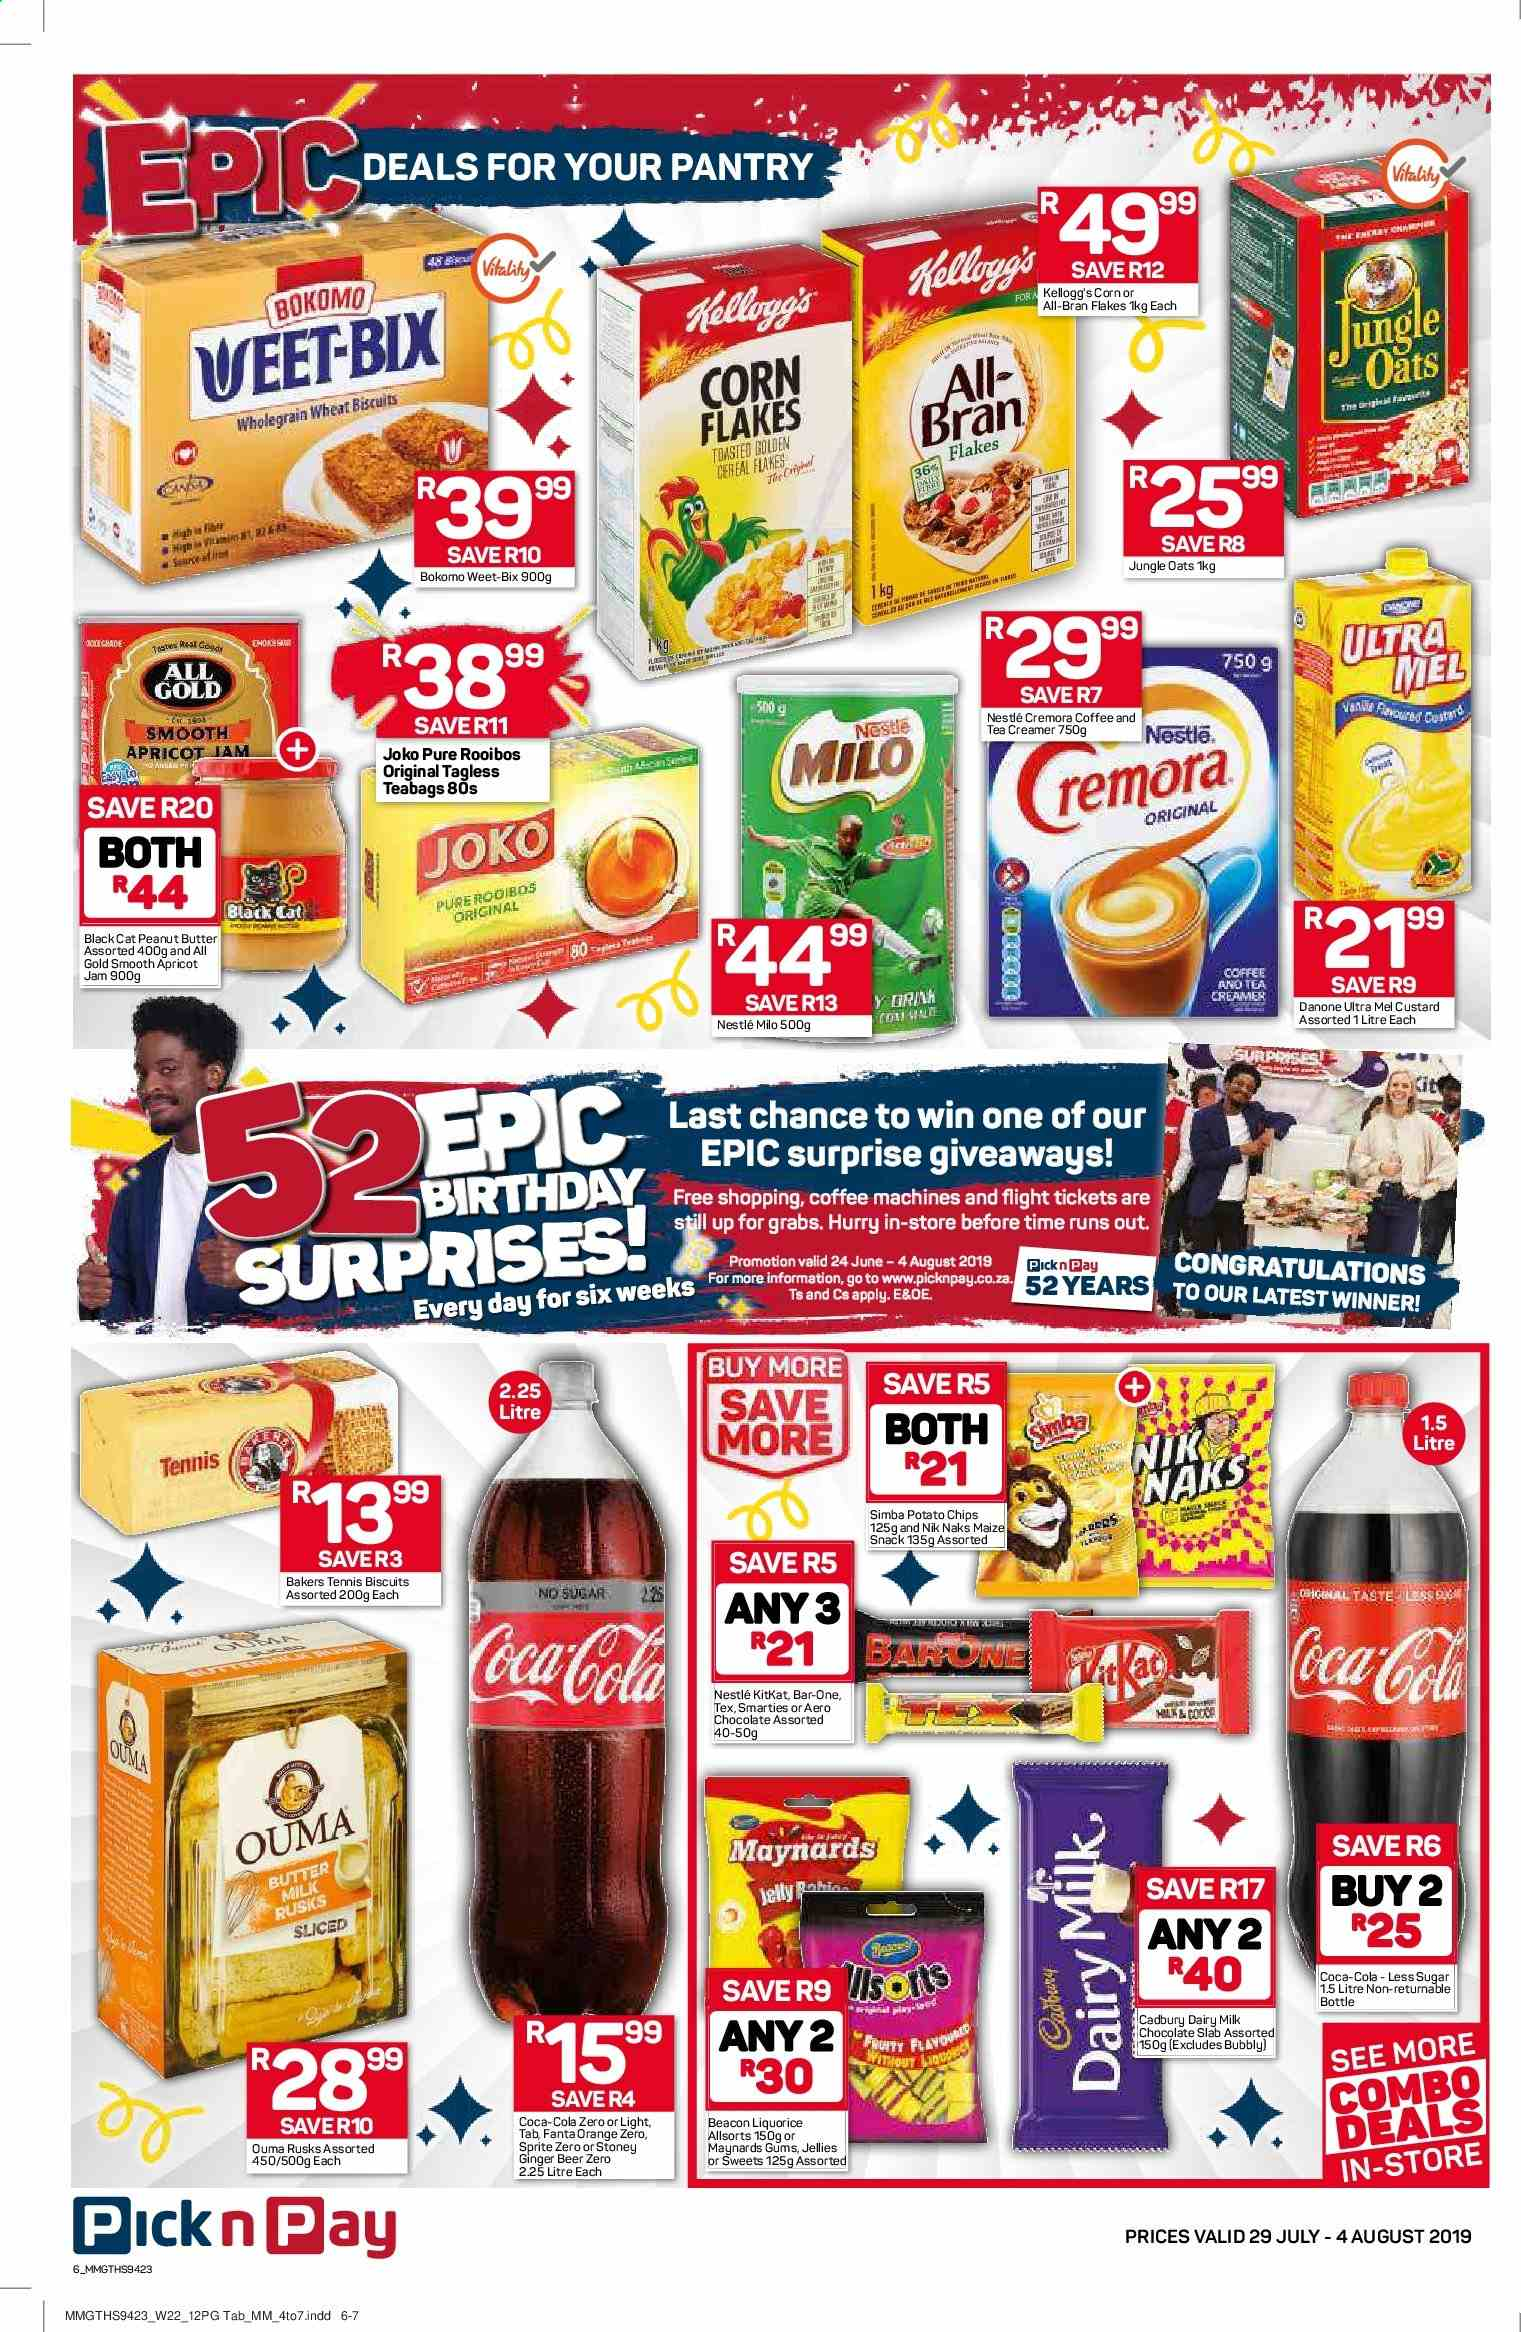 Pick n Pay catalogue 07.29.2019 - 08.04.2019 | My